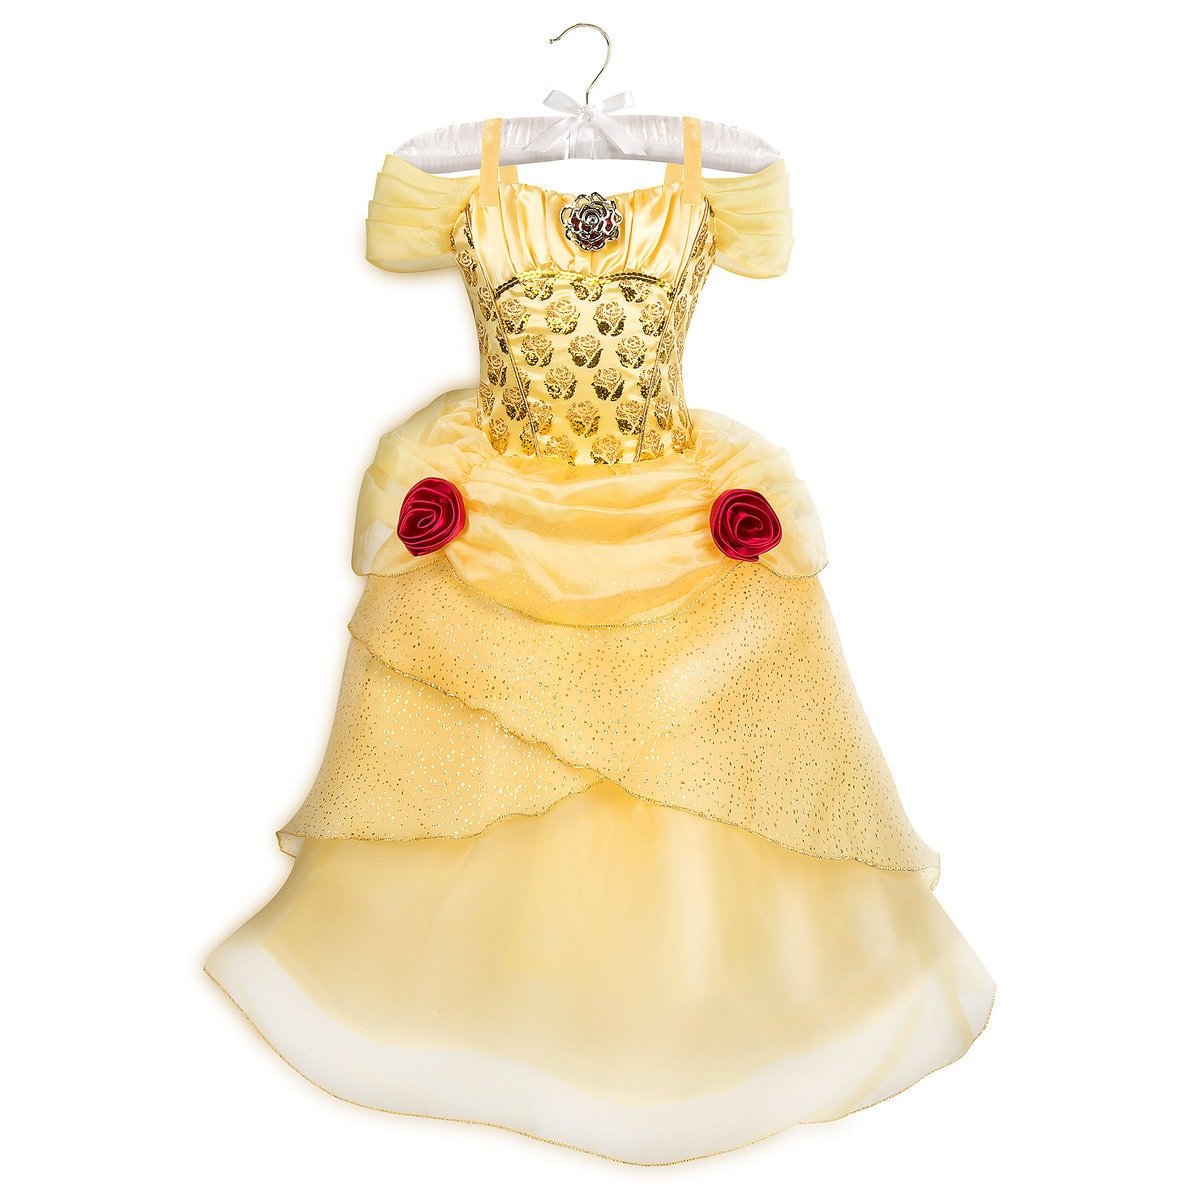 Belle Costume for Kids - Beauty and the Beast | shopDisney